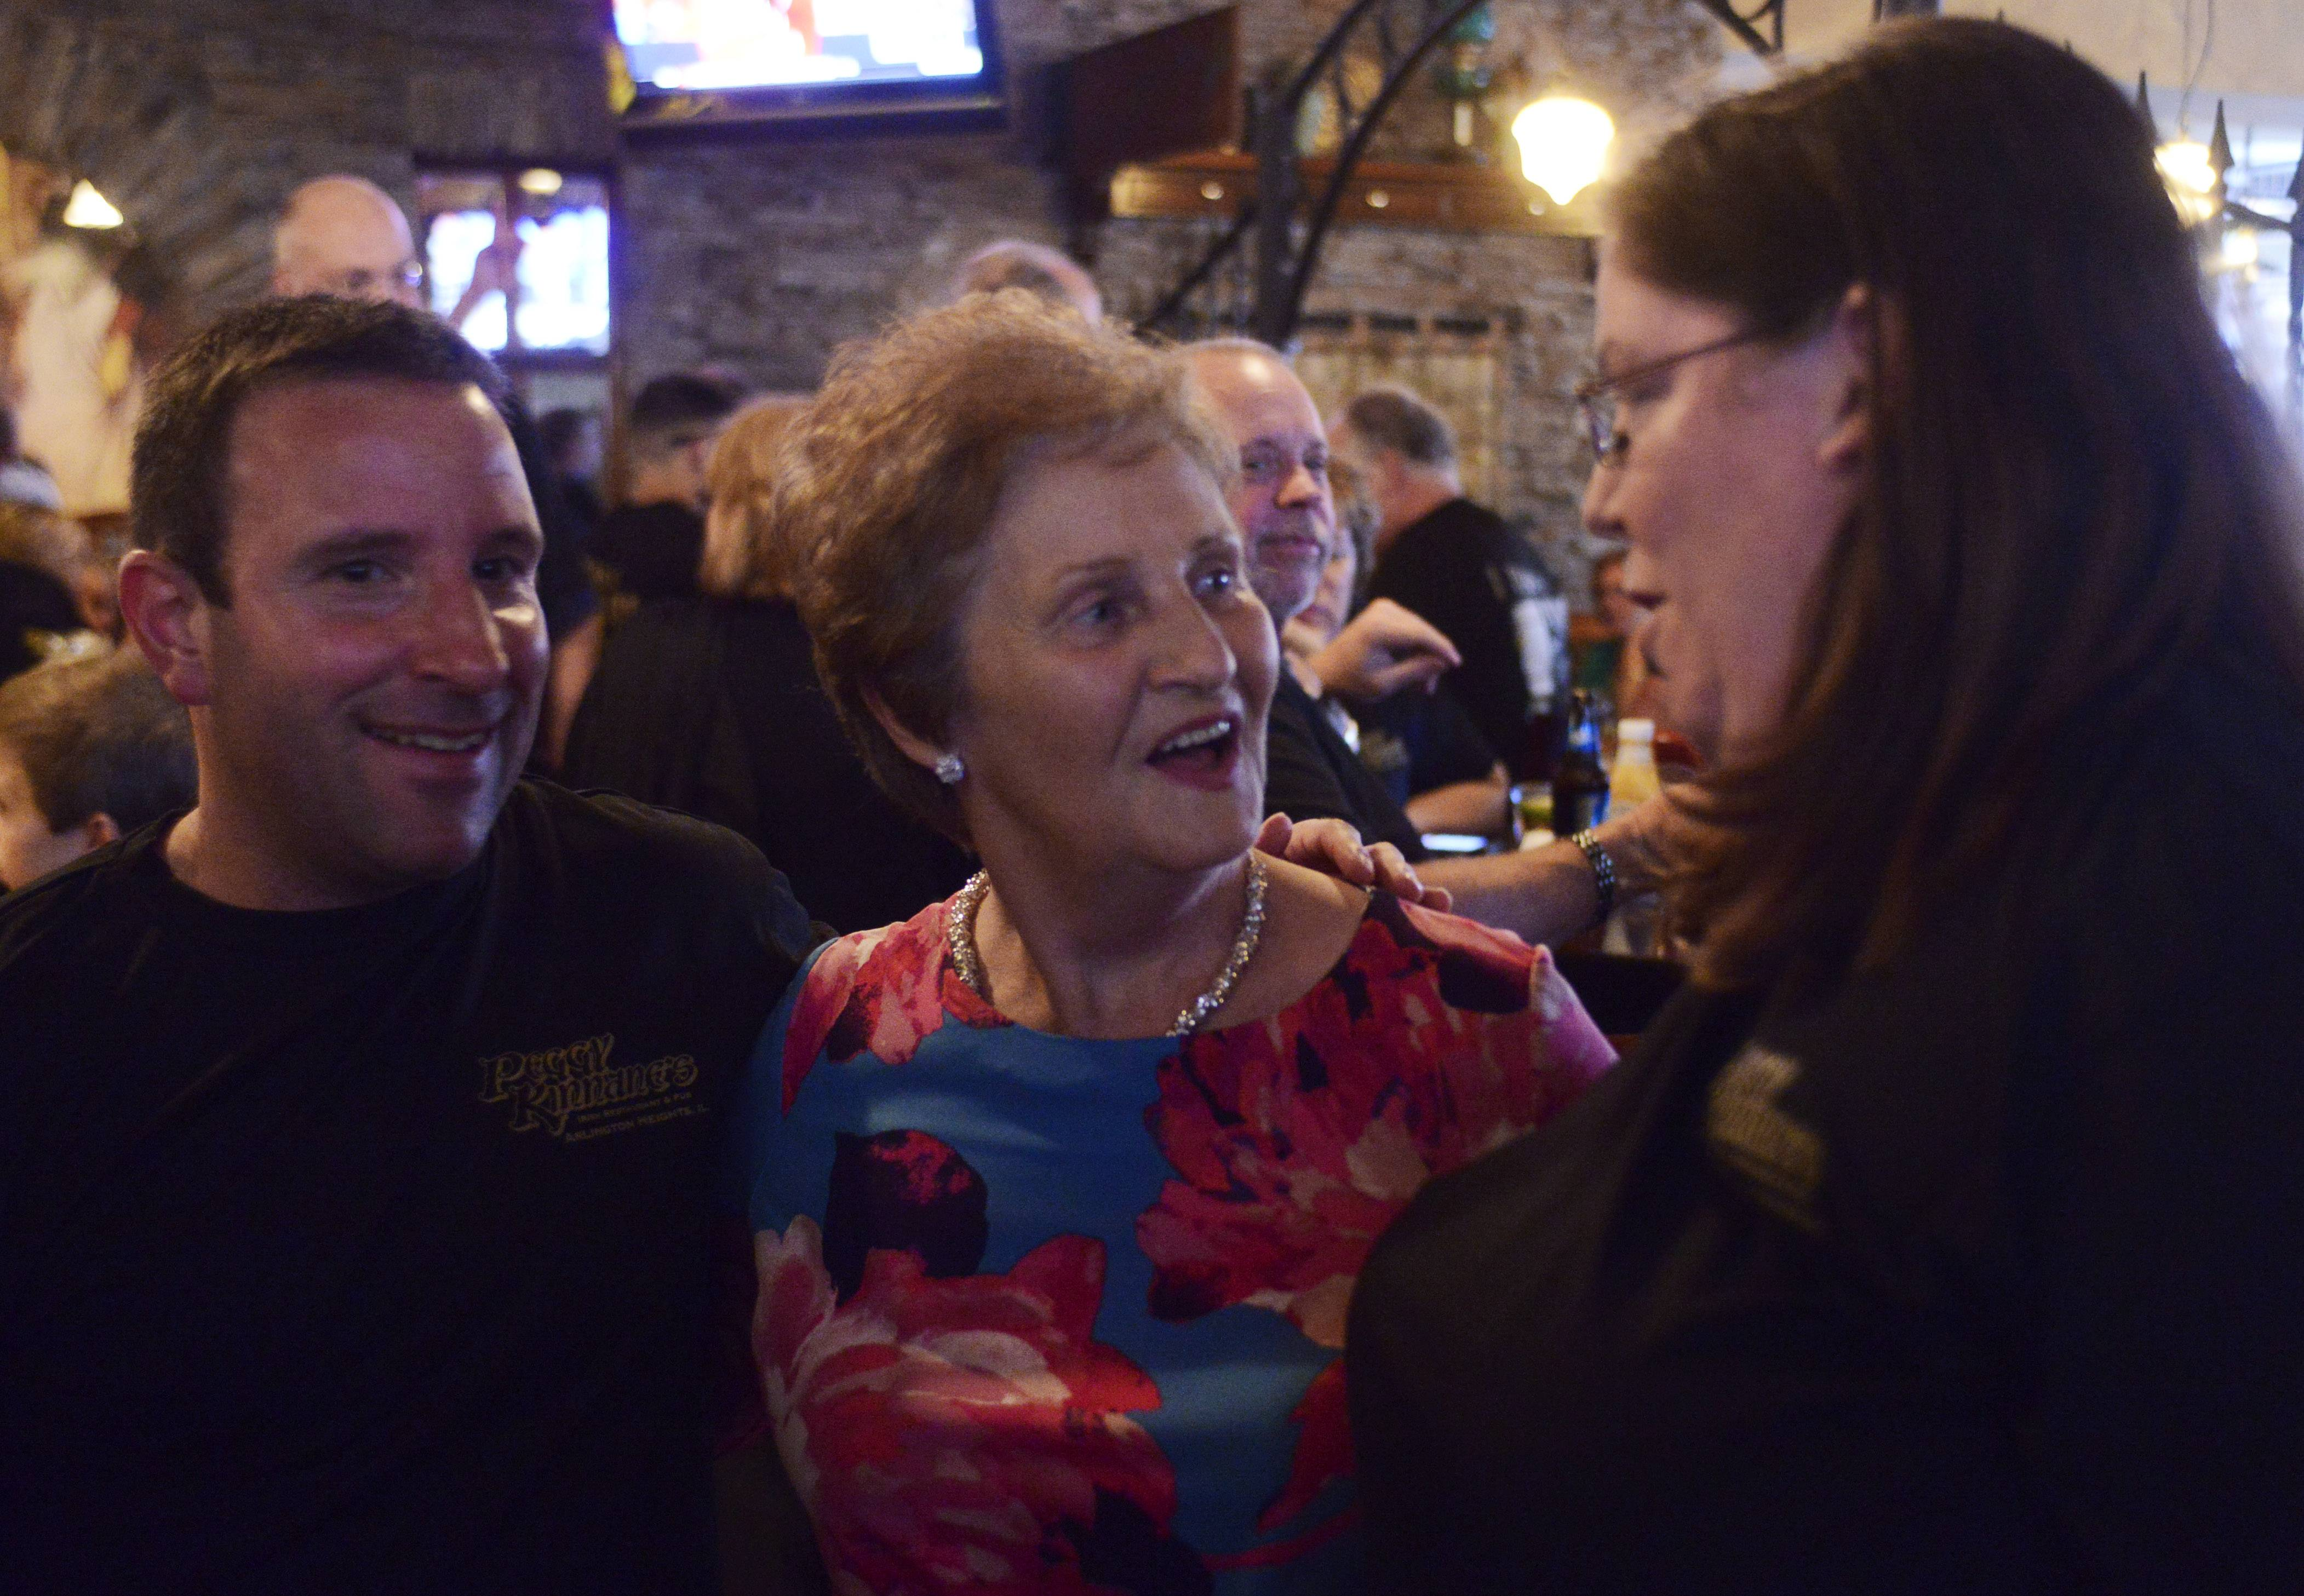 Arlington Heights pub offers up 'Pint with Peggy' night